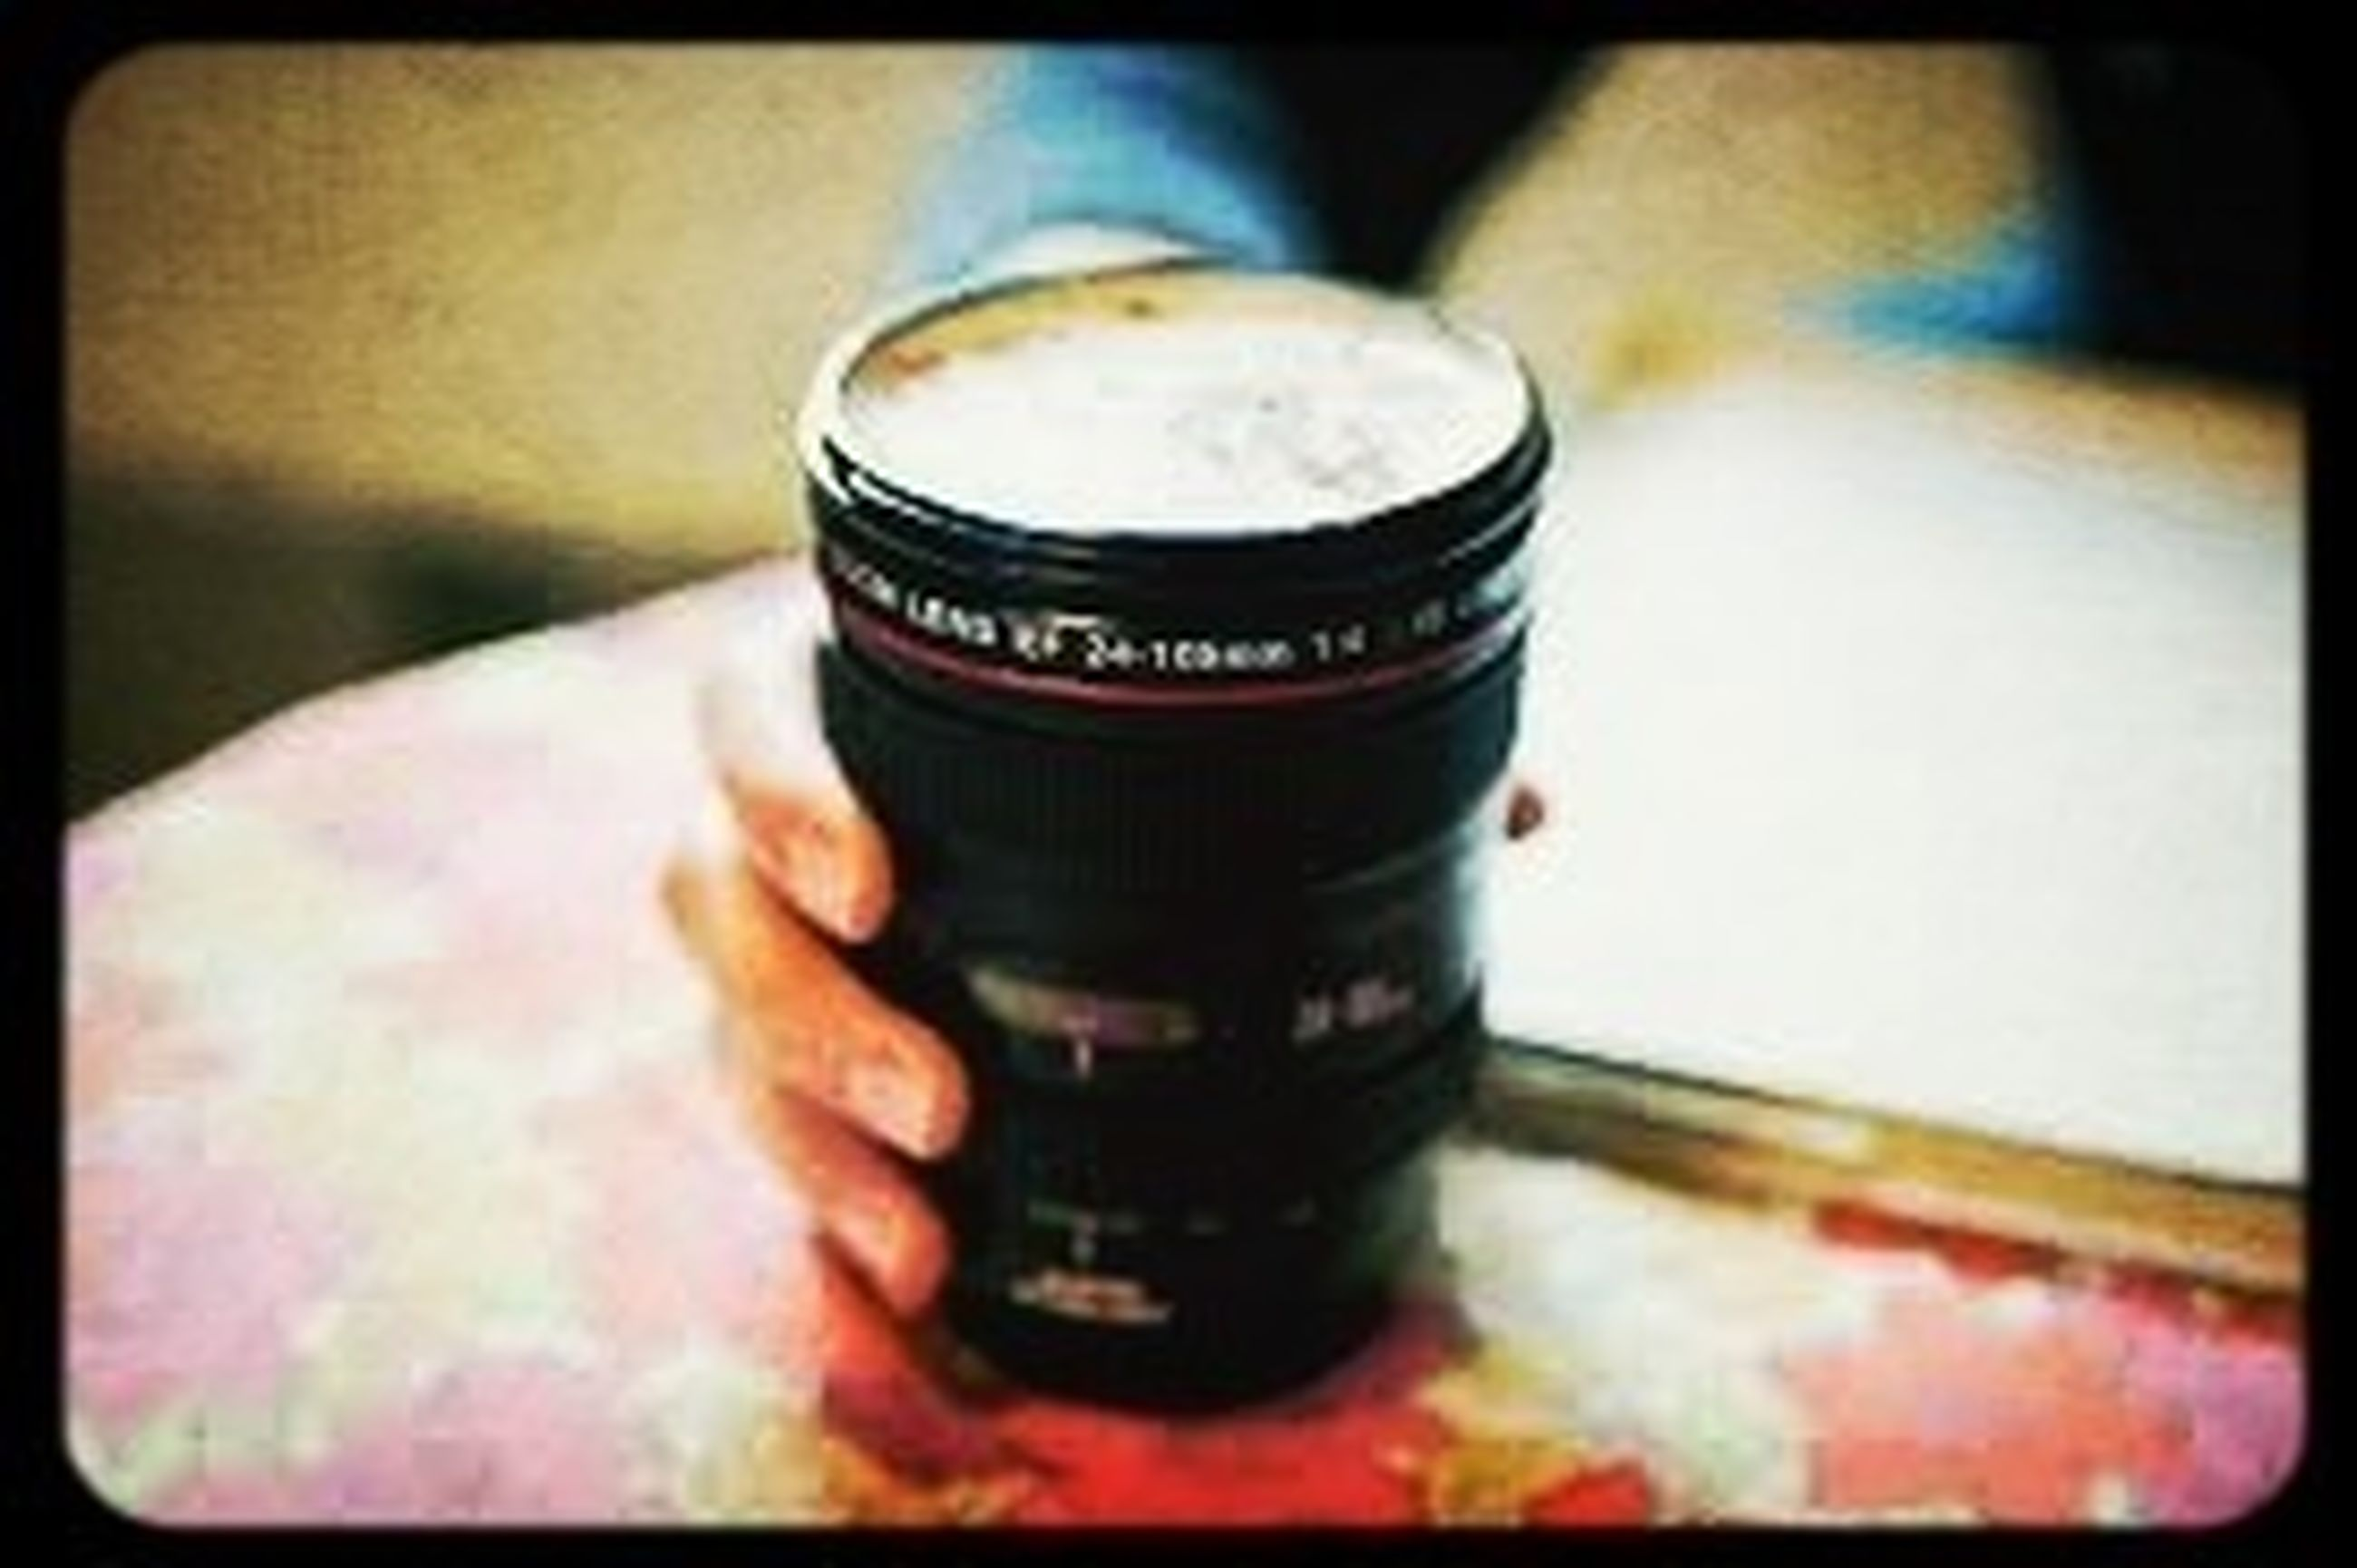 transfer print, indoors, auto post production filter, close-up, food and drink, focus on foreground, selective focus, still life, holding, drink, freshness, table, part of, refreshment, person, coffee cup, sweet food